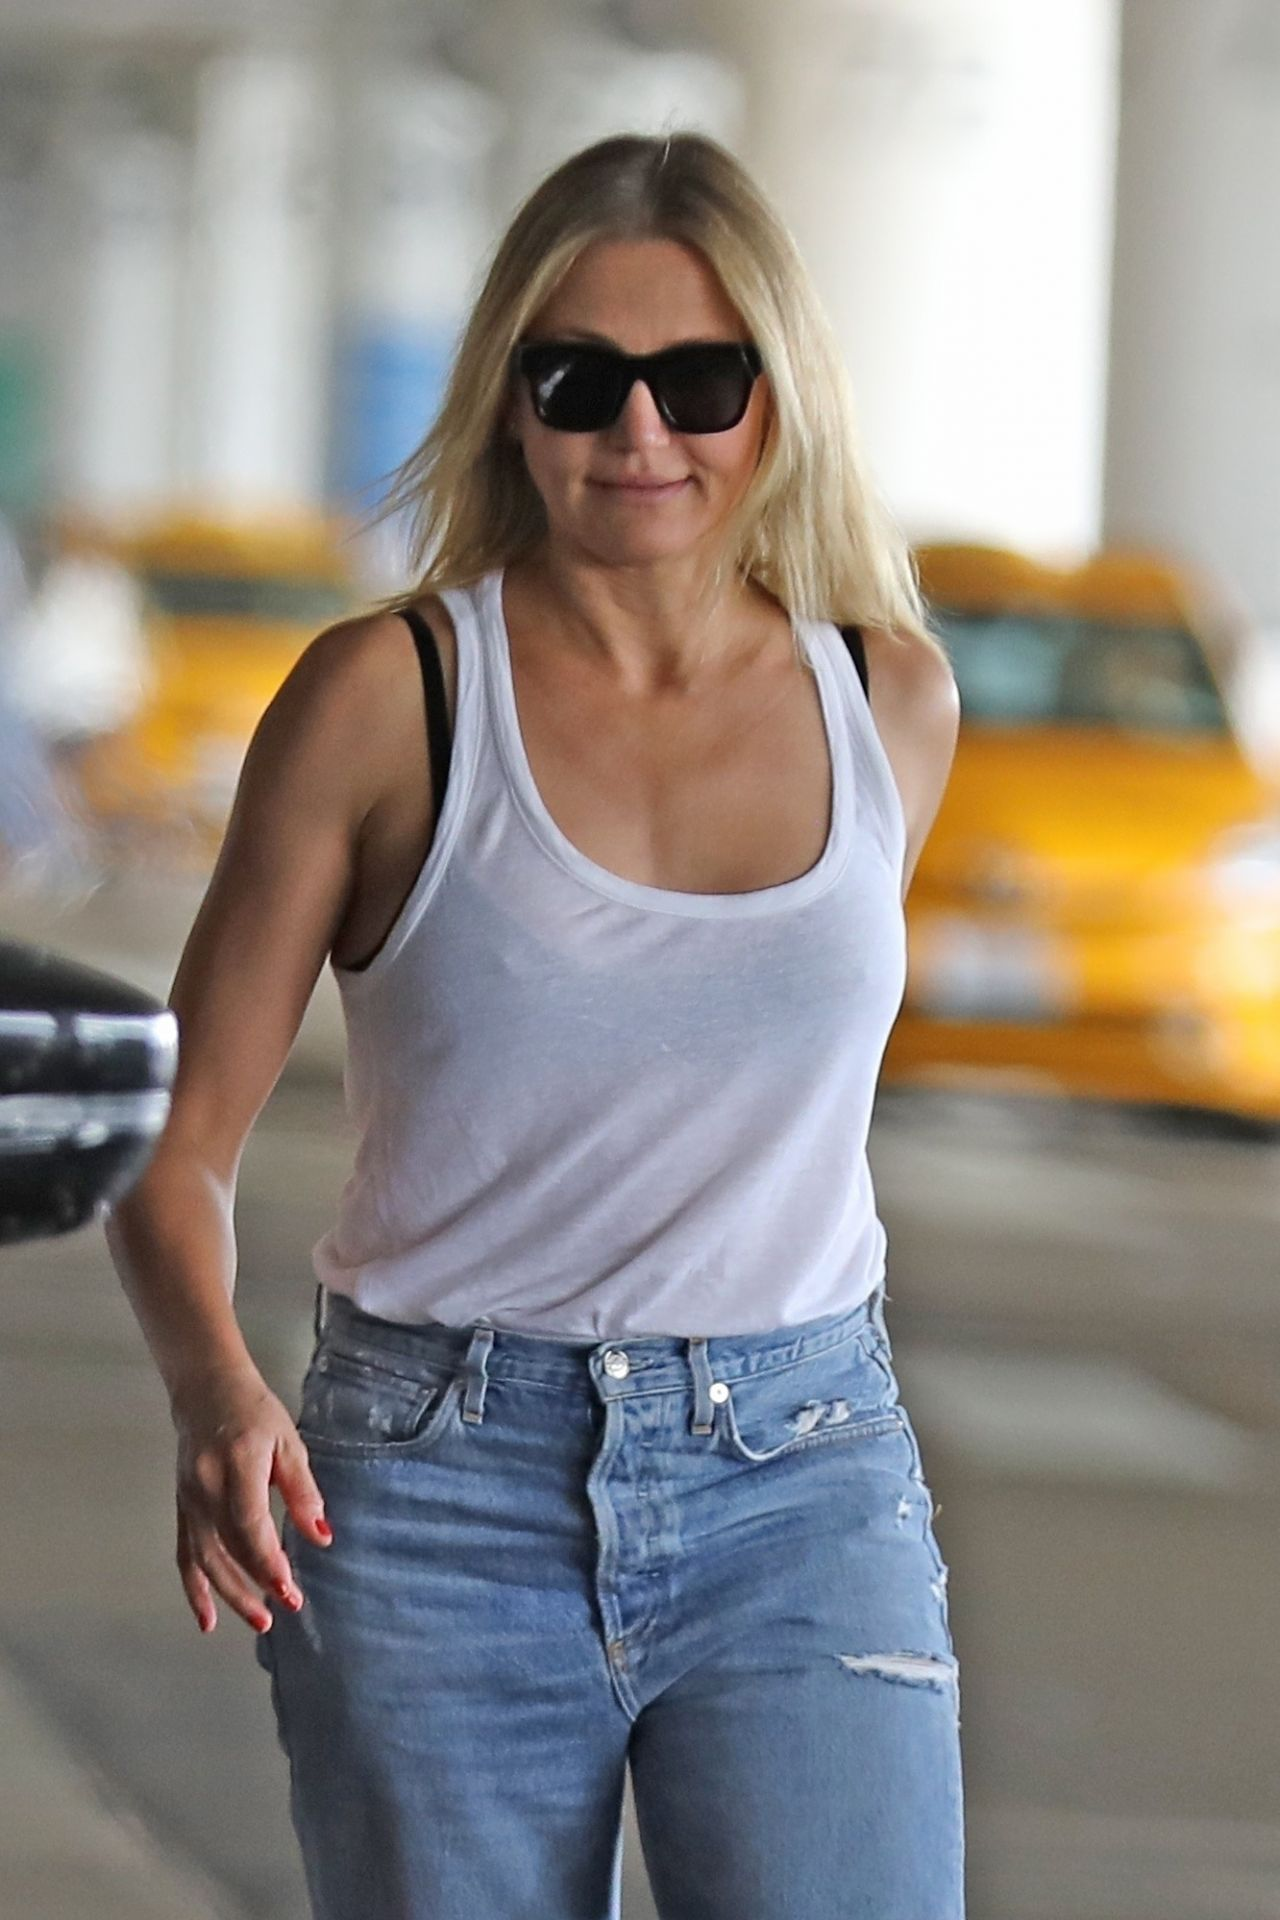 Cameron Diaz in Ripped Jeans - Out in Los Angeles 09/09/2019Cameron Diaz Net Worth 2019